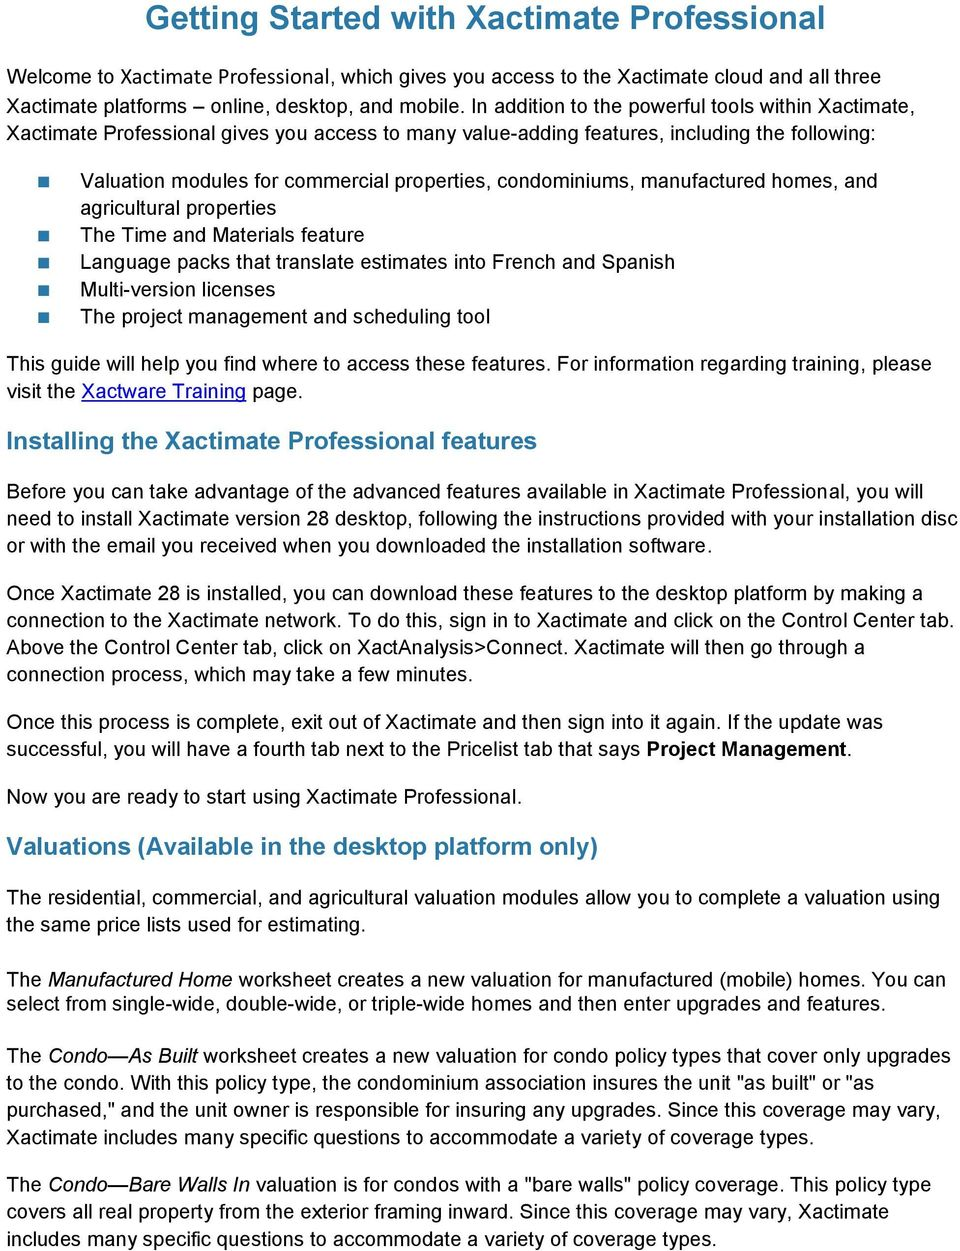 Getting Started with Xactimate Professional - PDF